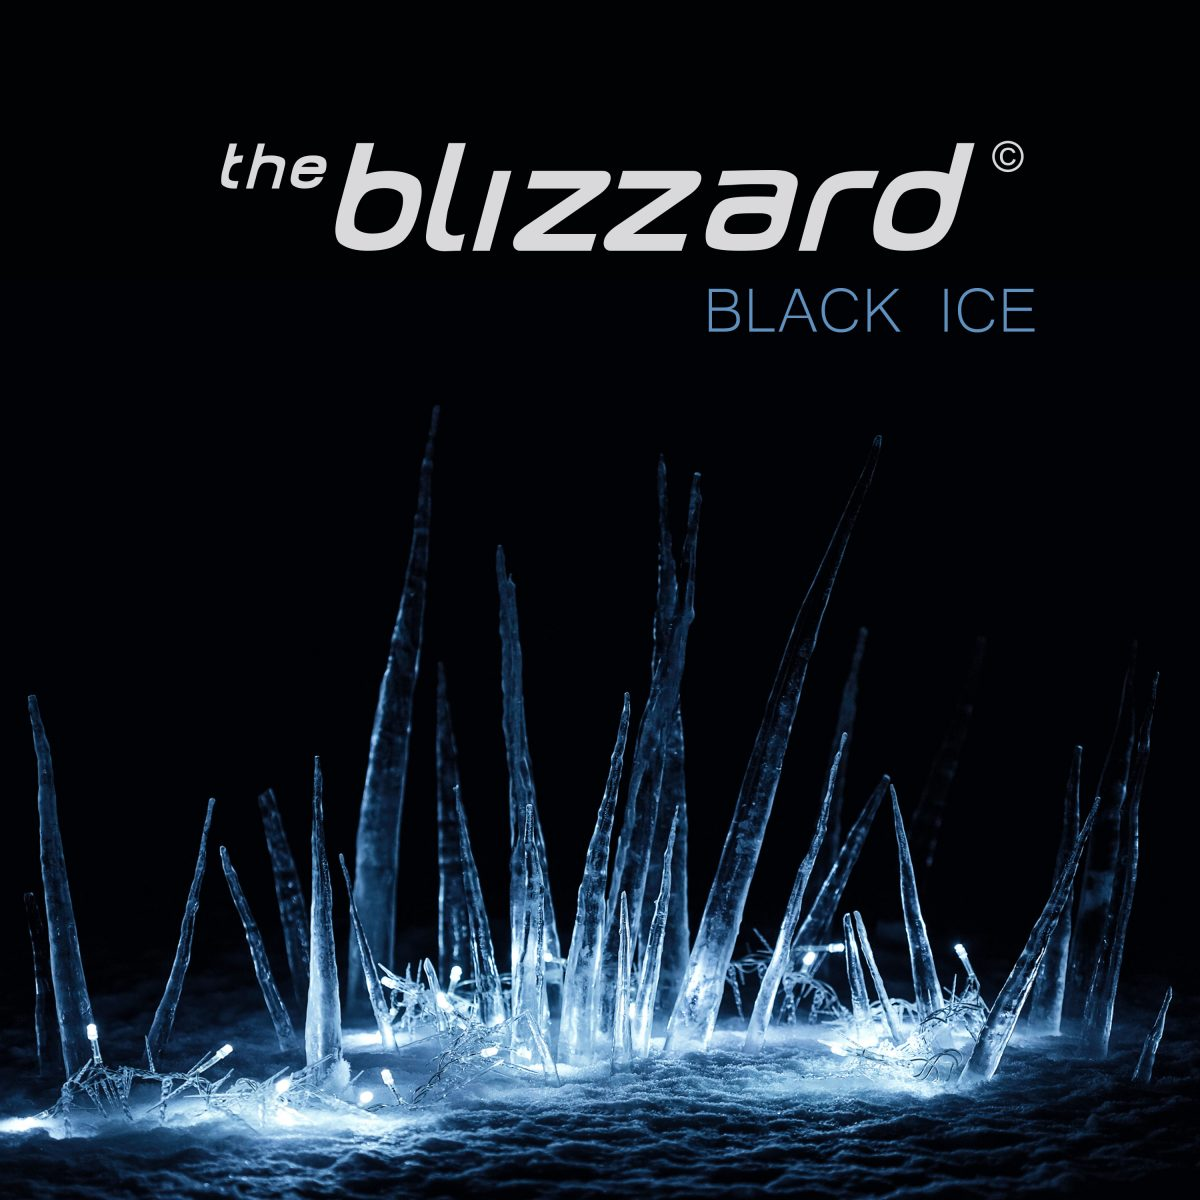 Black Ice - The Blizzard - on Patreon